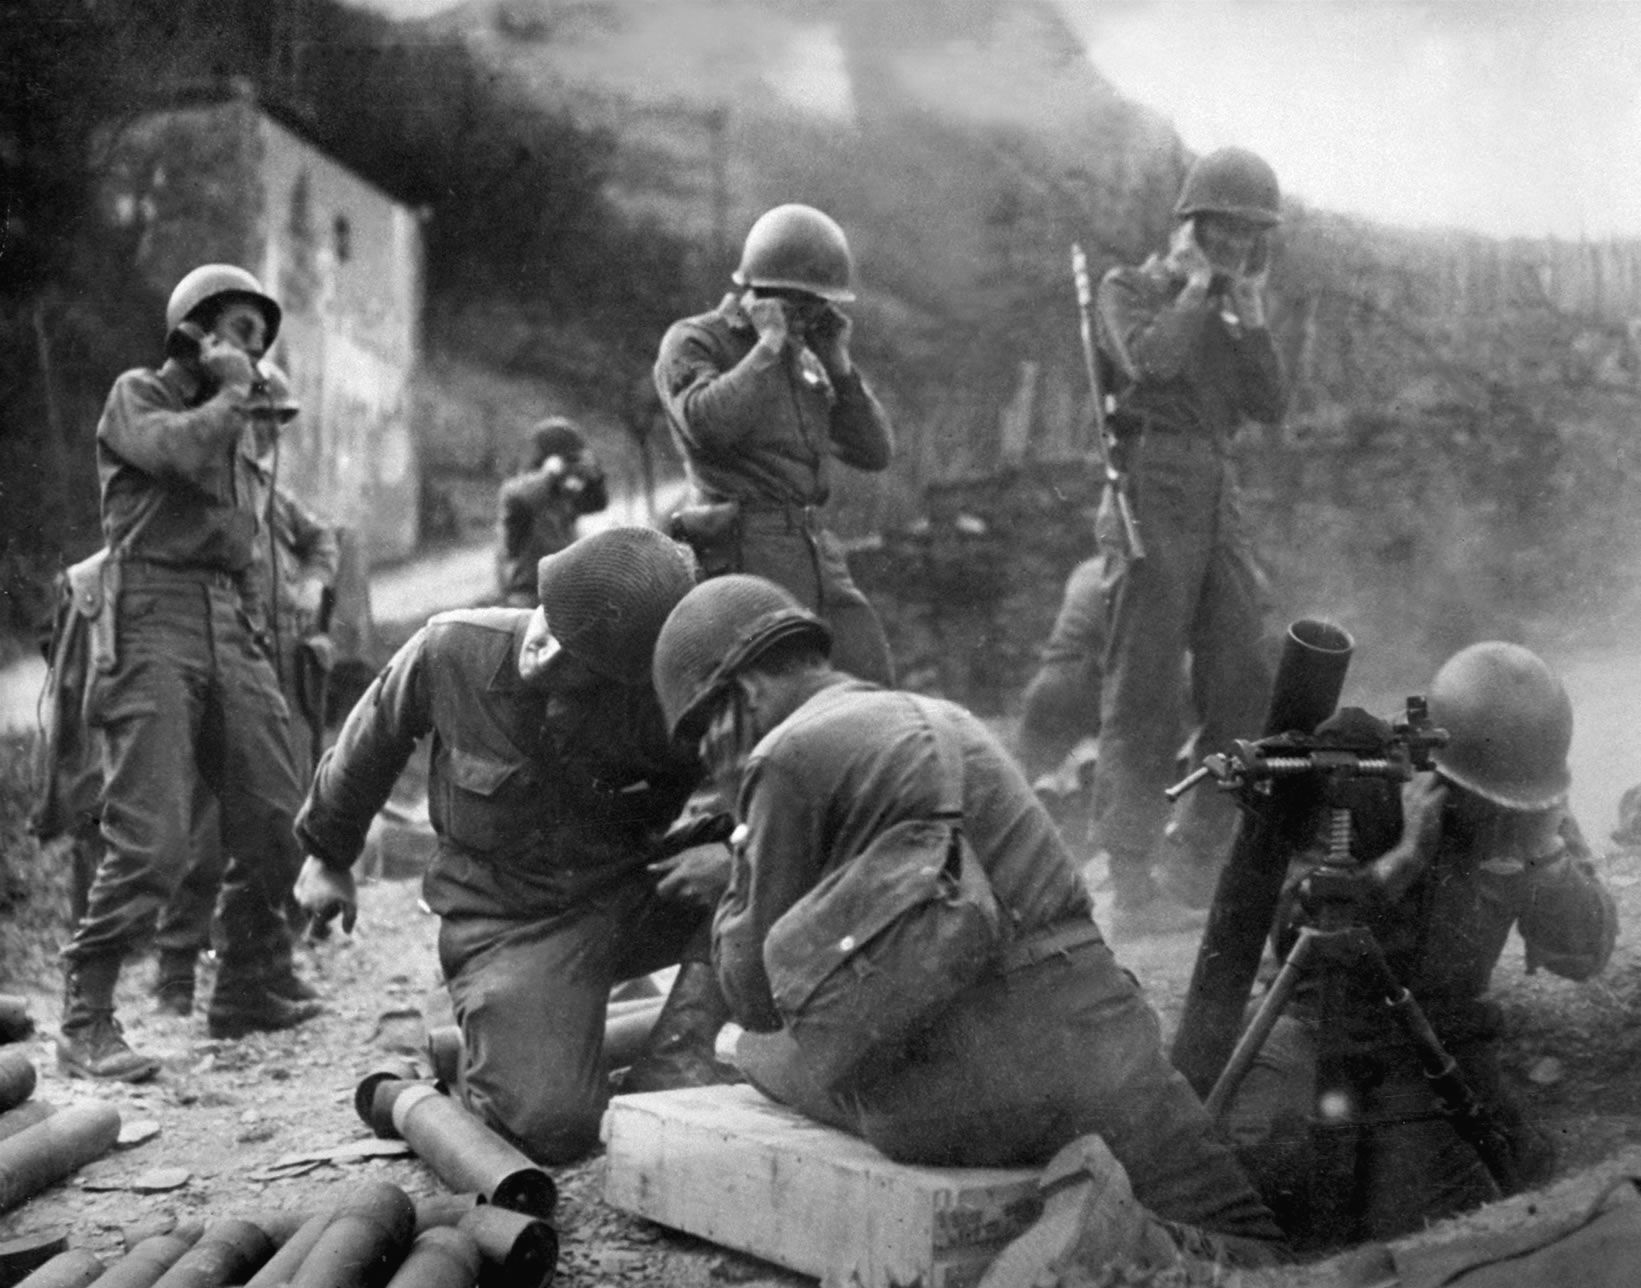 15 Astonishing World War 2 Photos That Bomb Your Senses With